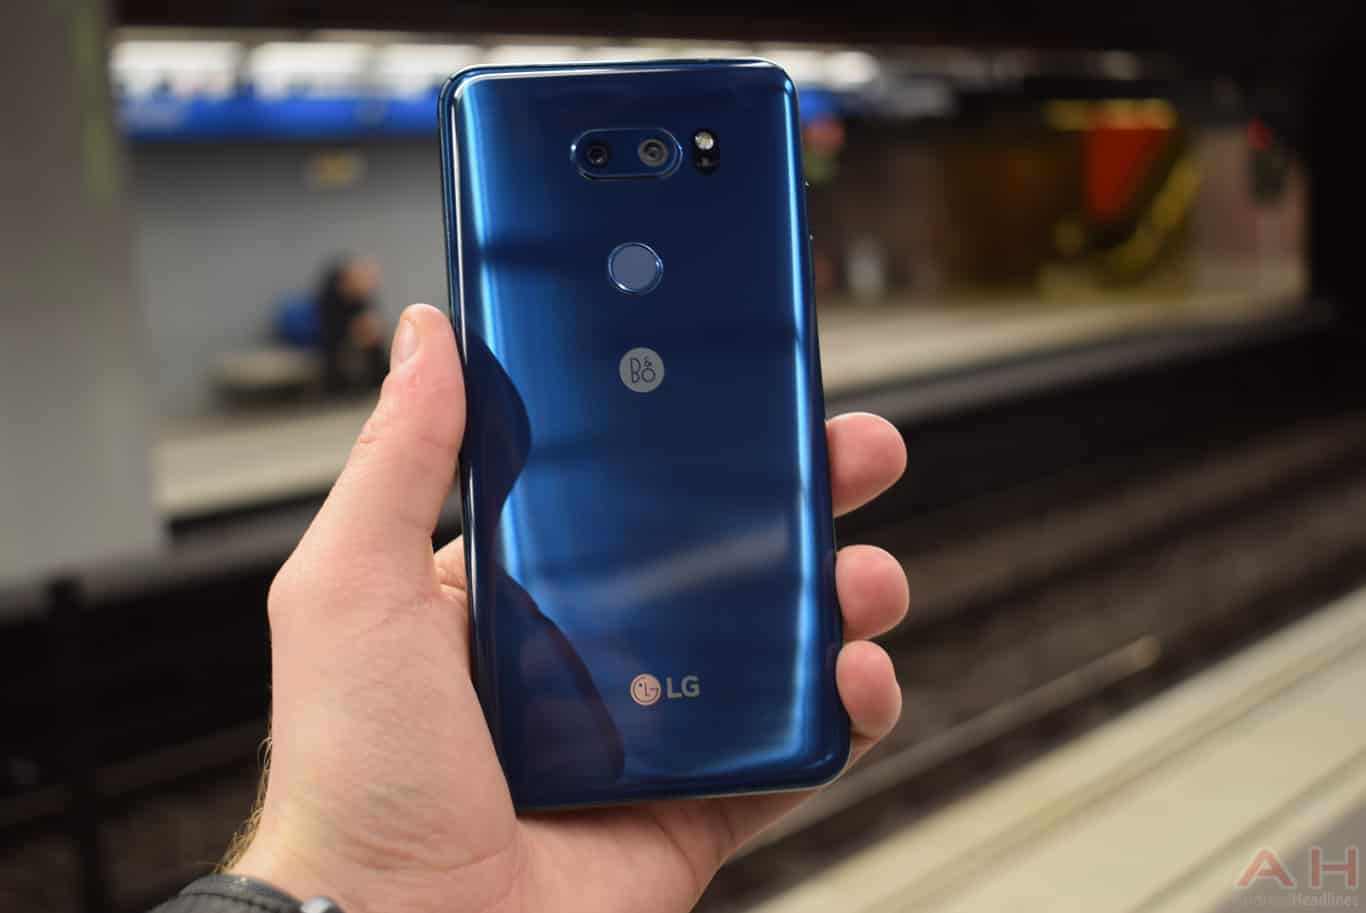 LG V30S ThinQ with enhanced AI capabilities announced at MWC 2018